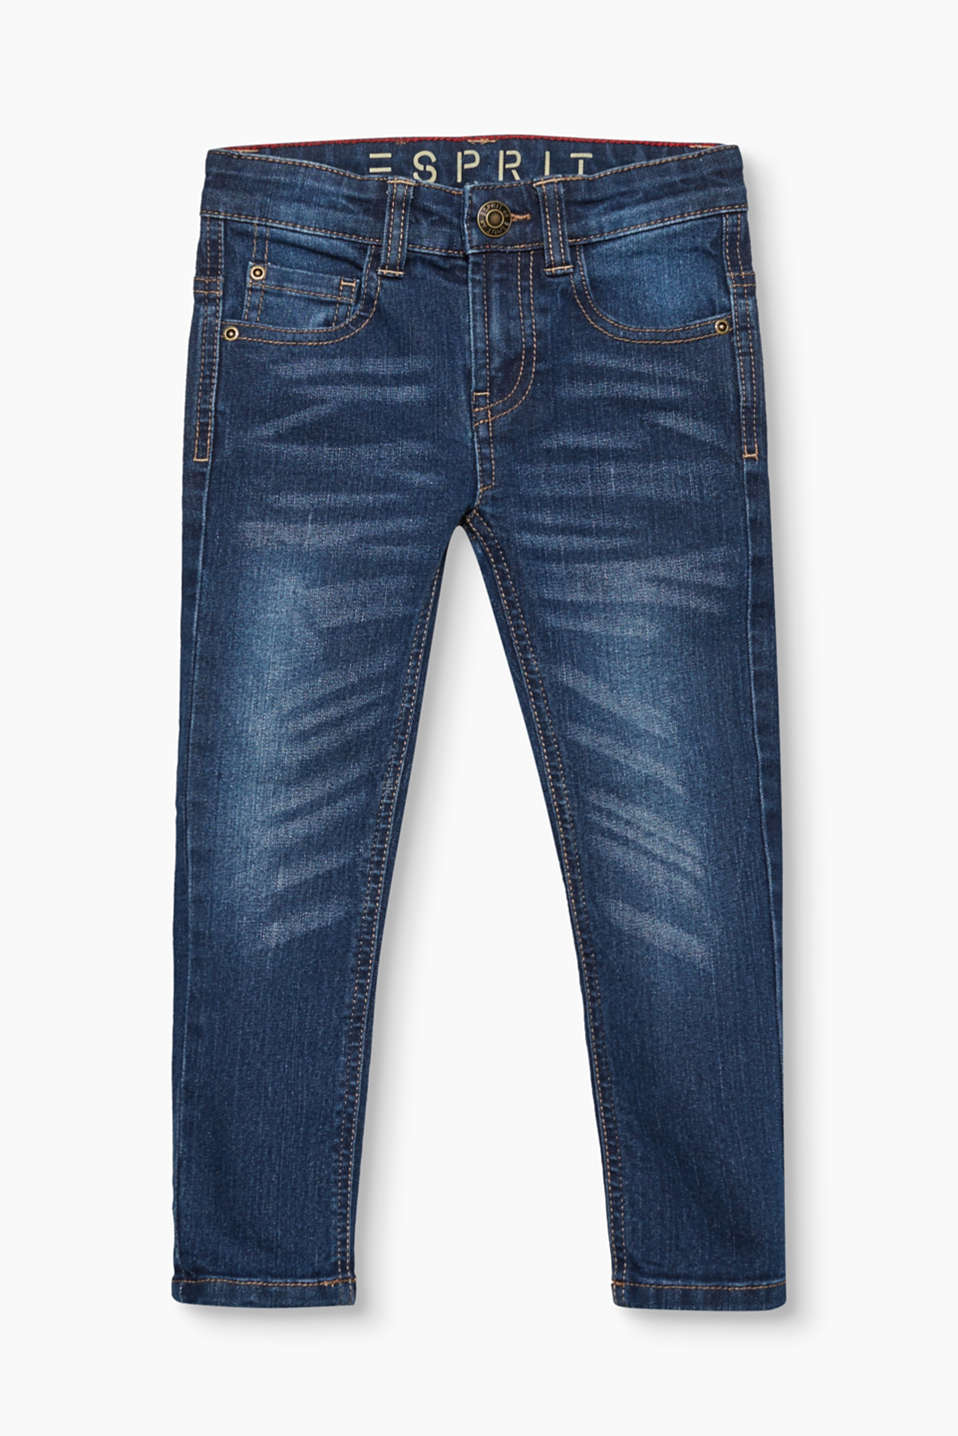 Esprit - Jean en denim stretch à taille ajustable